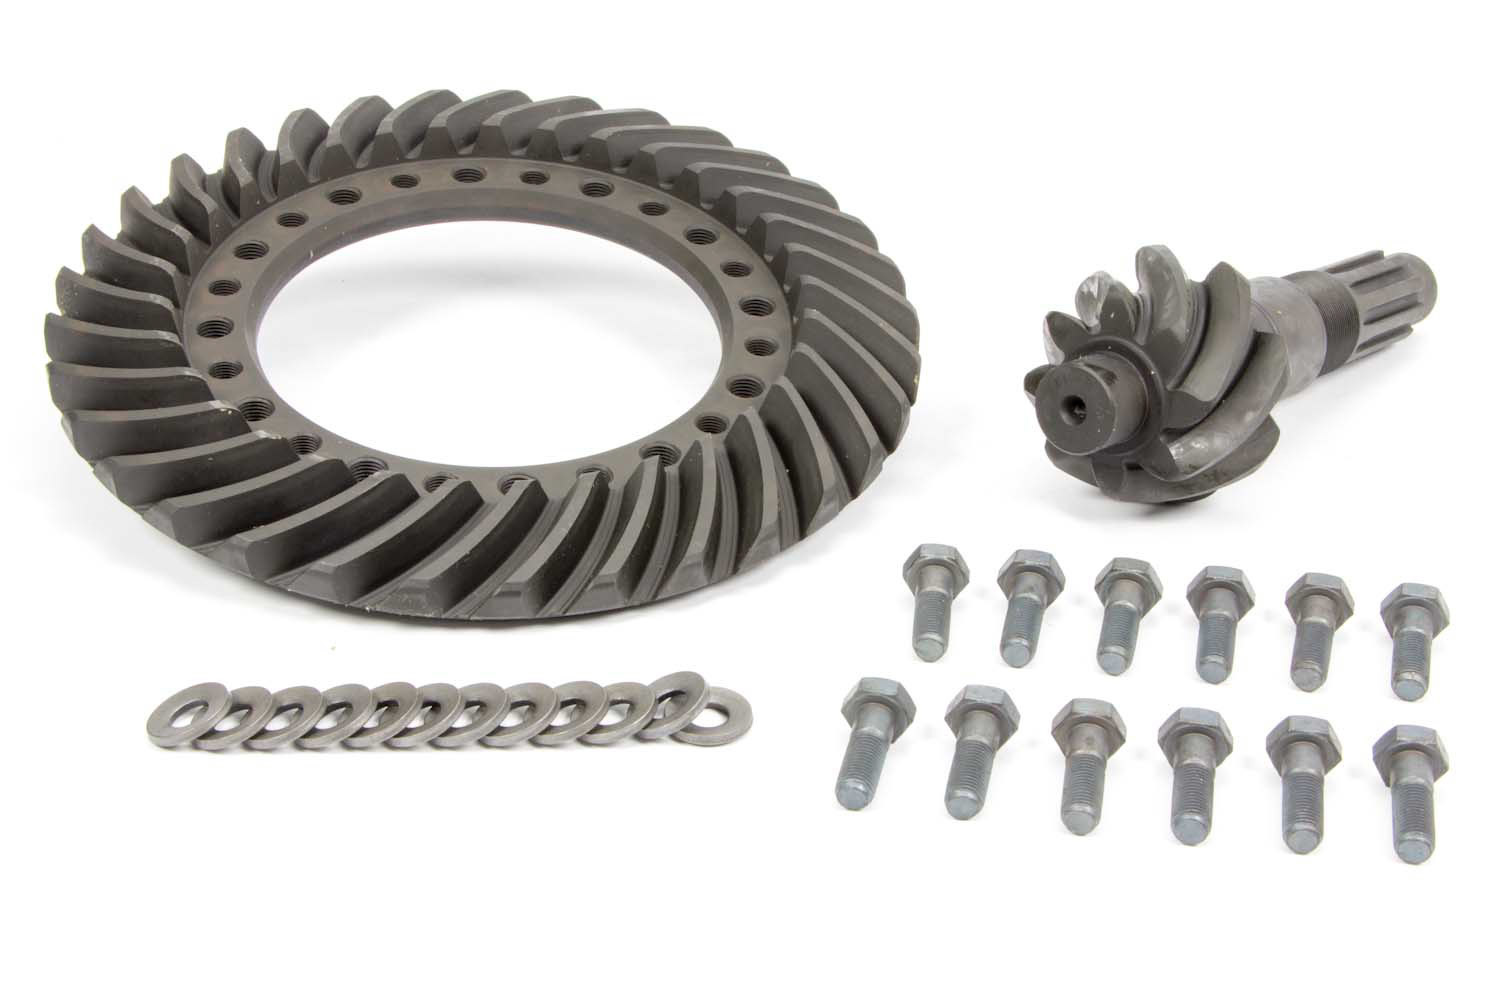 Winters 5400 Ring and Pinion, 4.86 Ratio, 10 Spline, Steel, Winters 12-Bolt 10 in Quick Change, Kit